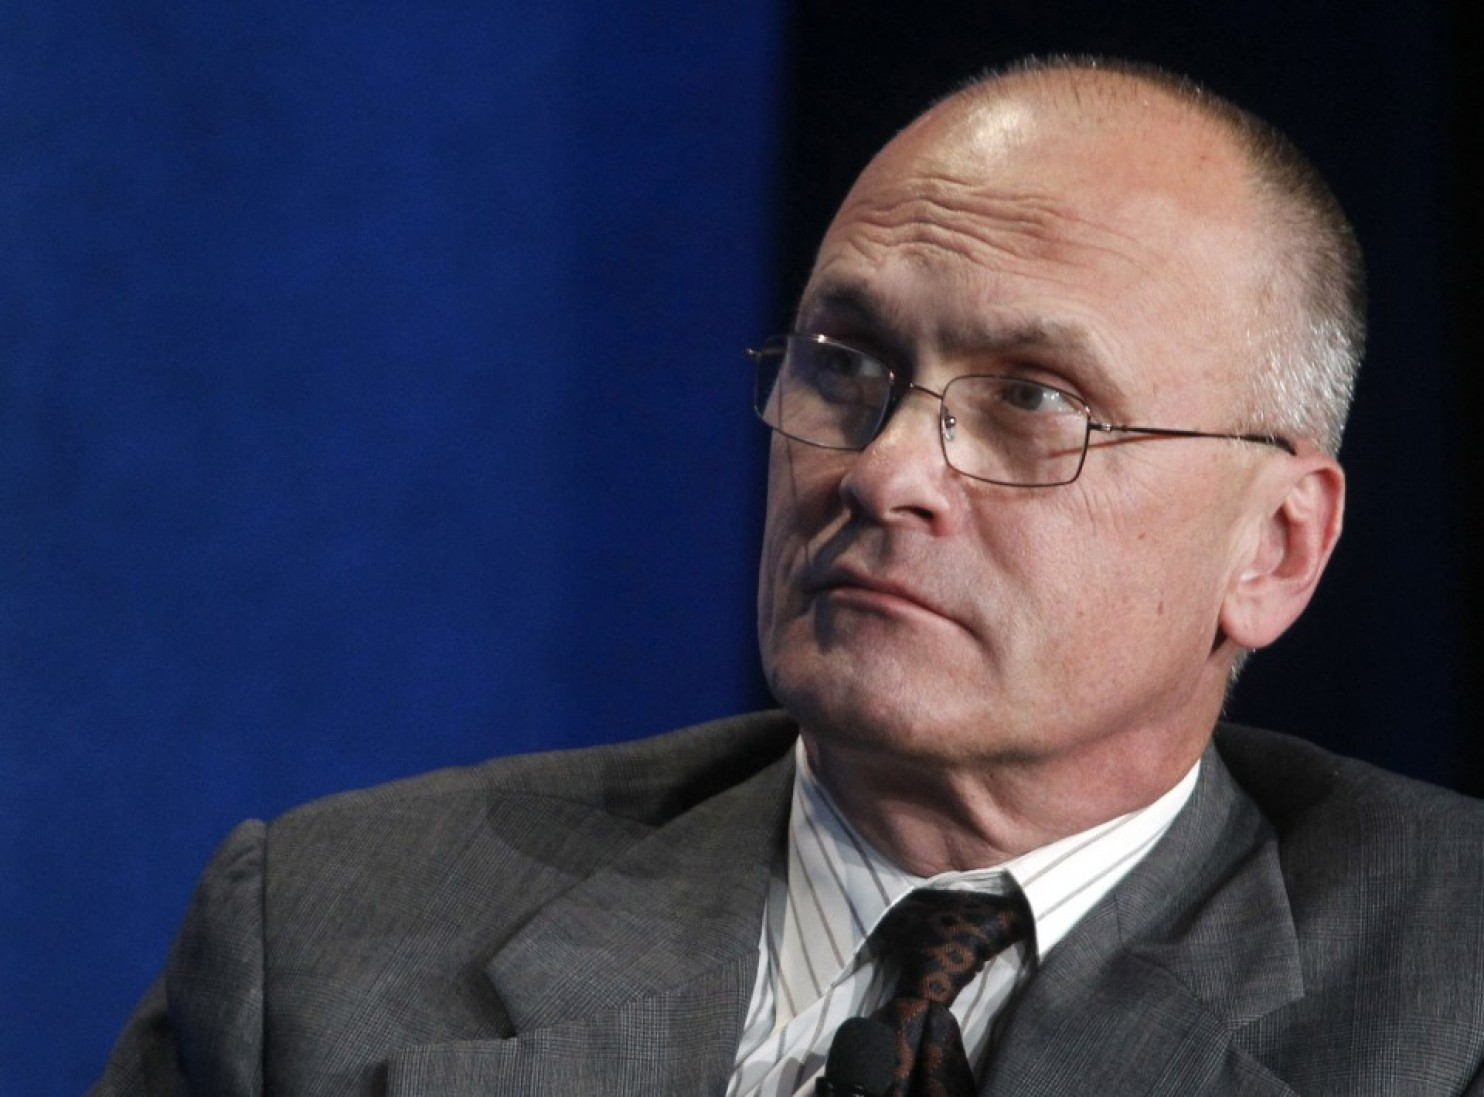 Watchdog group working to unseal Puzder's divorce records before his confirmation hearing